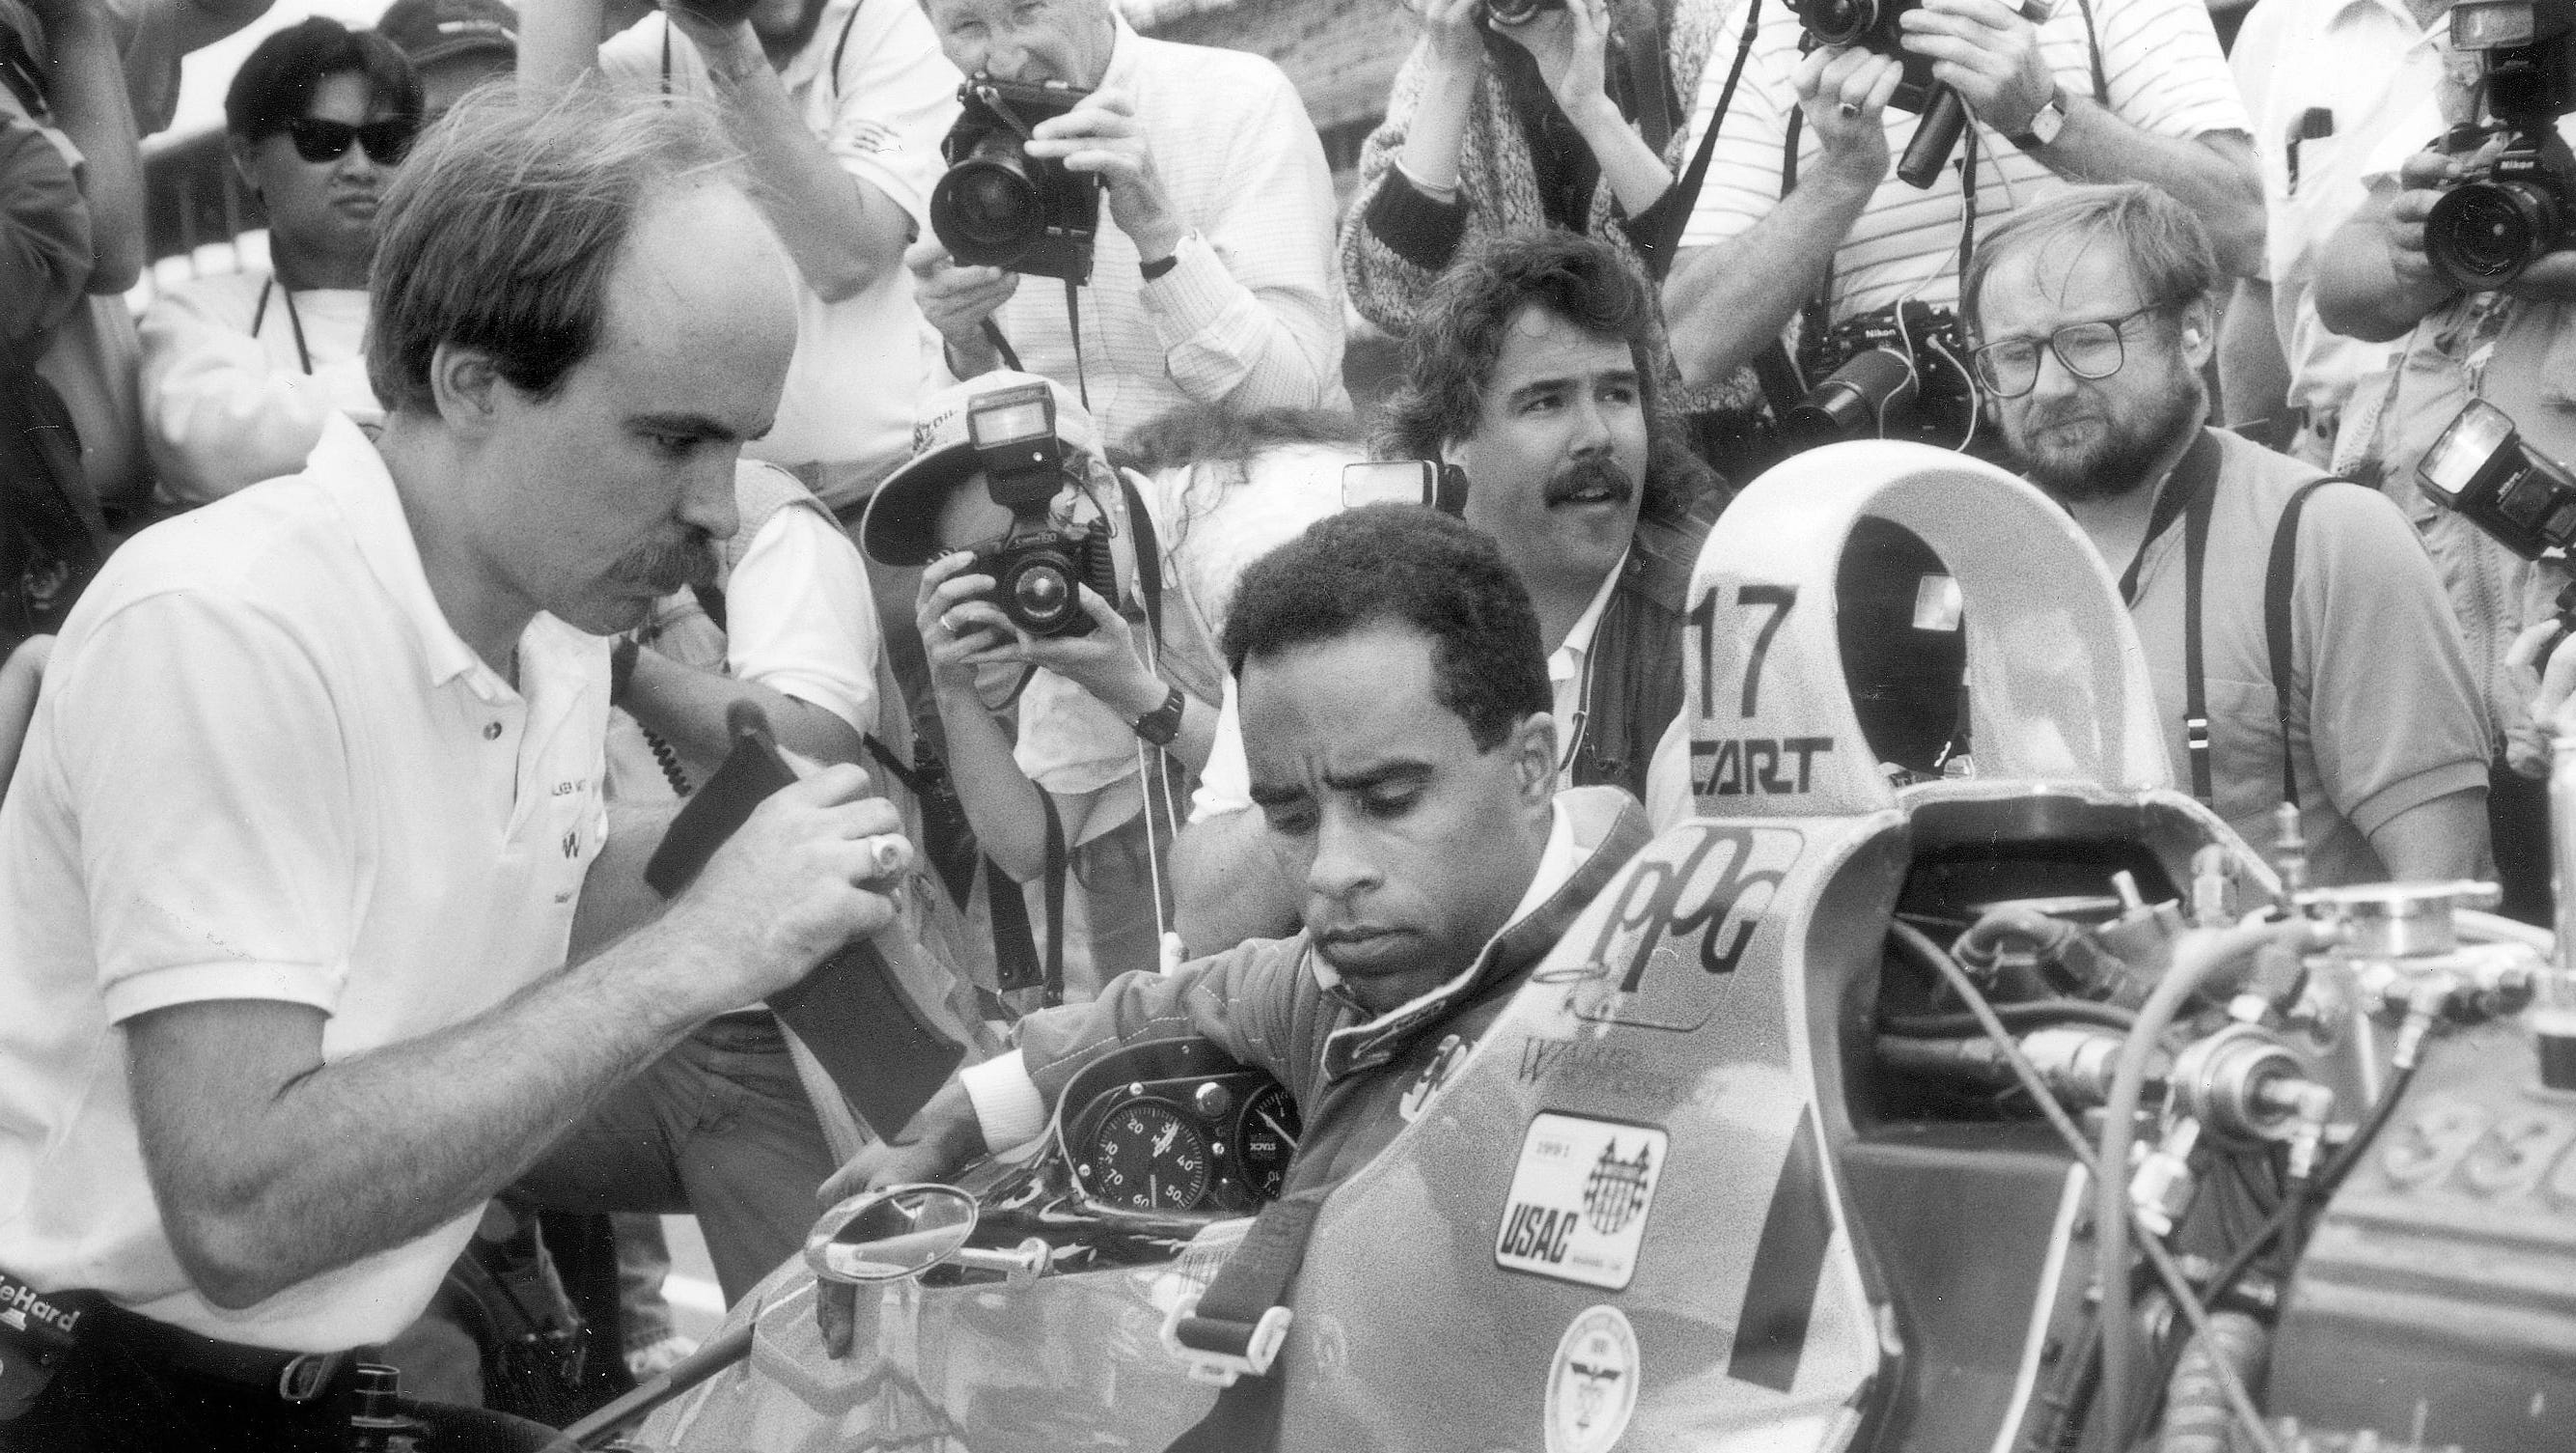 Willy T. Ribbs gets out of his car after his run around the speedway at the Indianapolis Motor Speedway, May 9, 1991. That year, he became the first African-American to qualify for the Indianapolis 500.